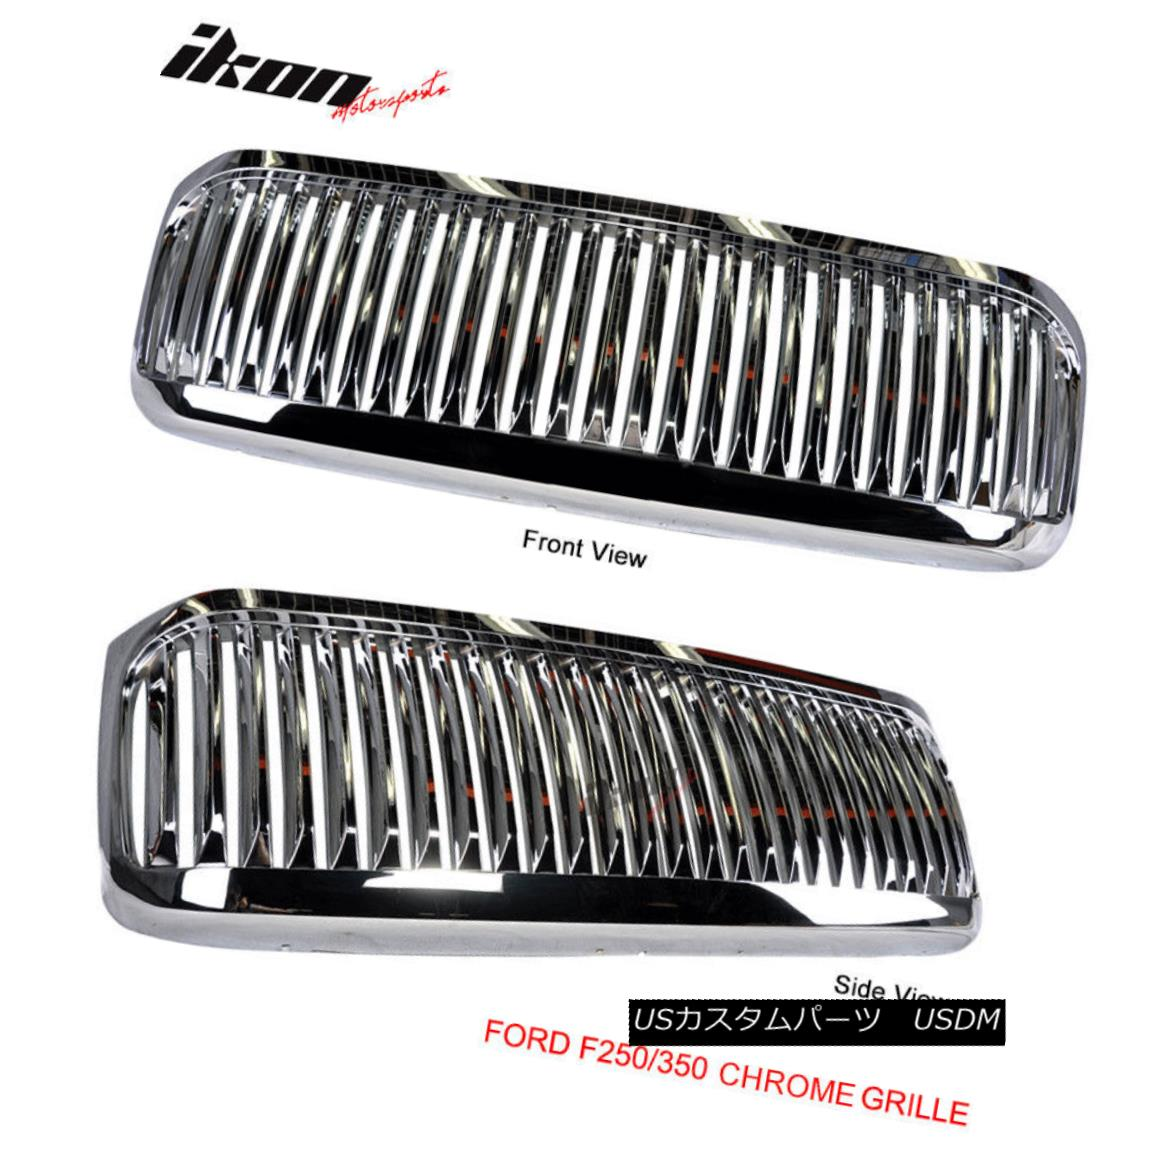 USグリル Fits 99-04 Ford F250 F350 Excursion Vertical Grille Chrome フィット99-04 Ford F250 F350エクスカーション垂直グリルクローム